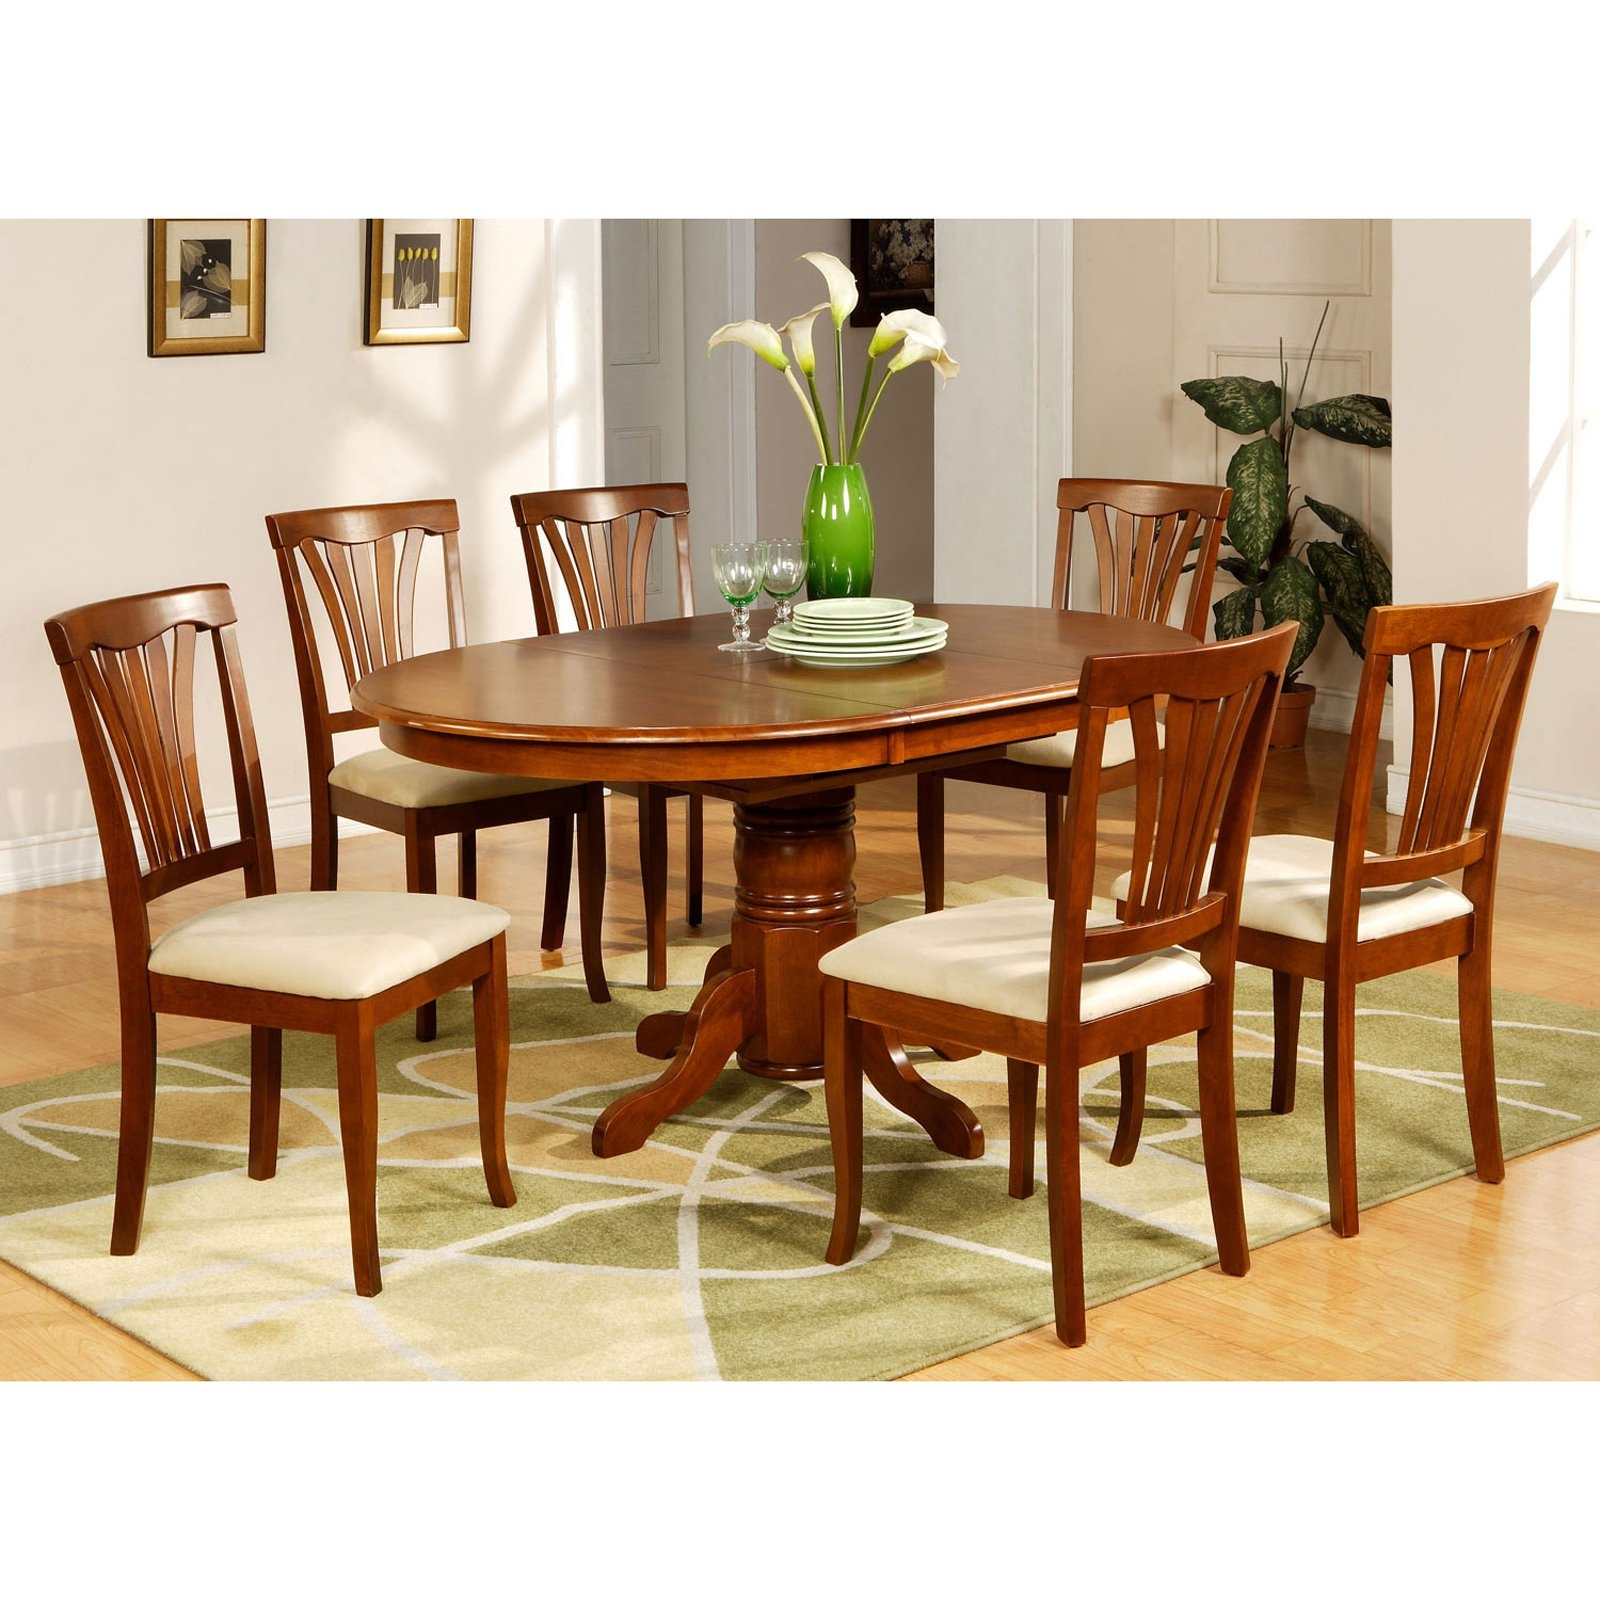 East West Furniture AVON7 SBR C 7PC Oval Dining Set With Single Pedestal  With